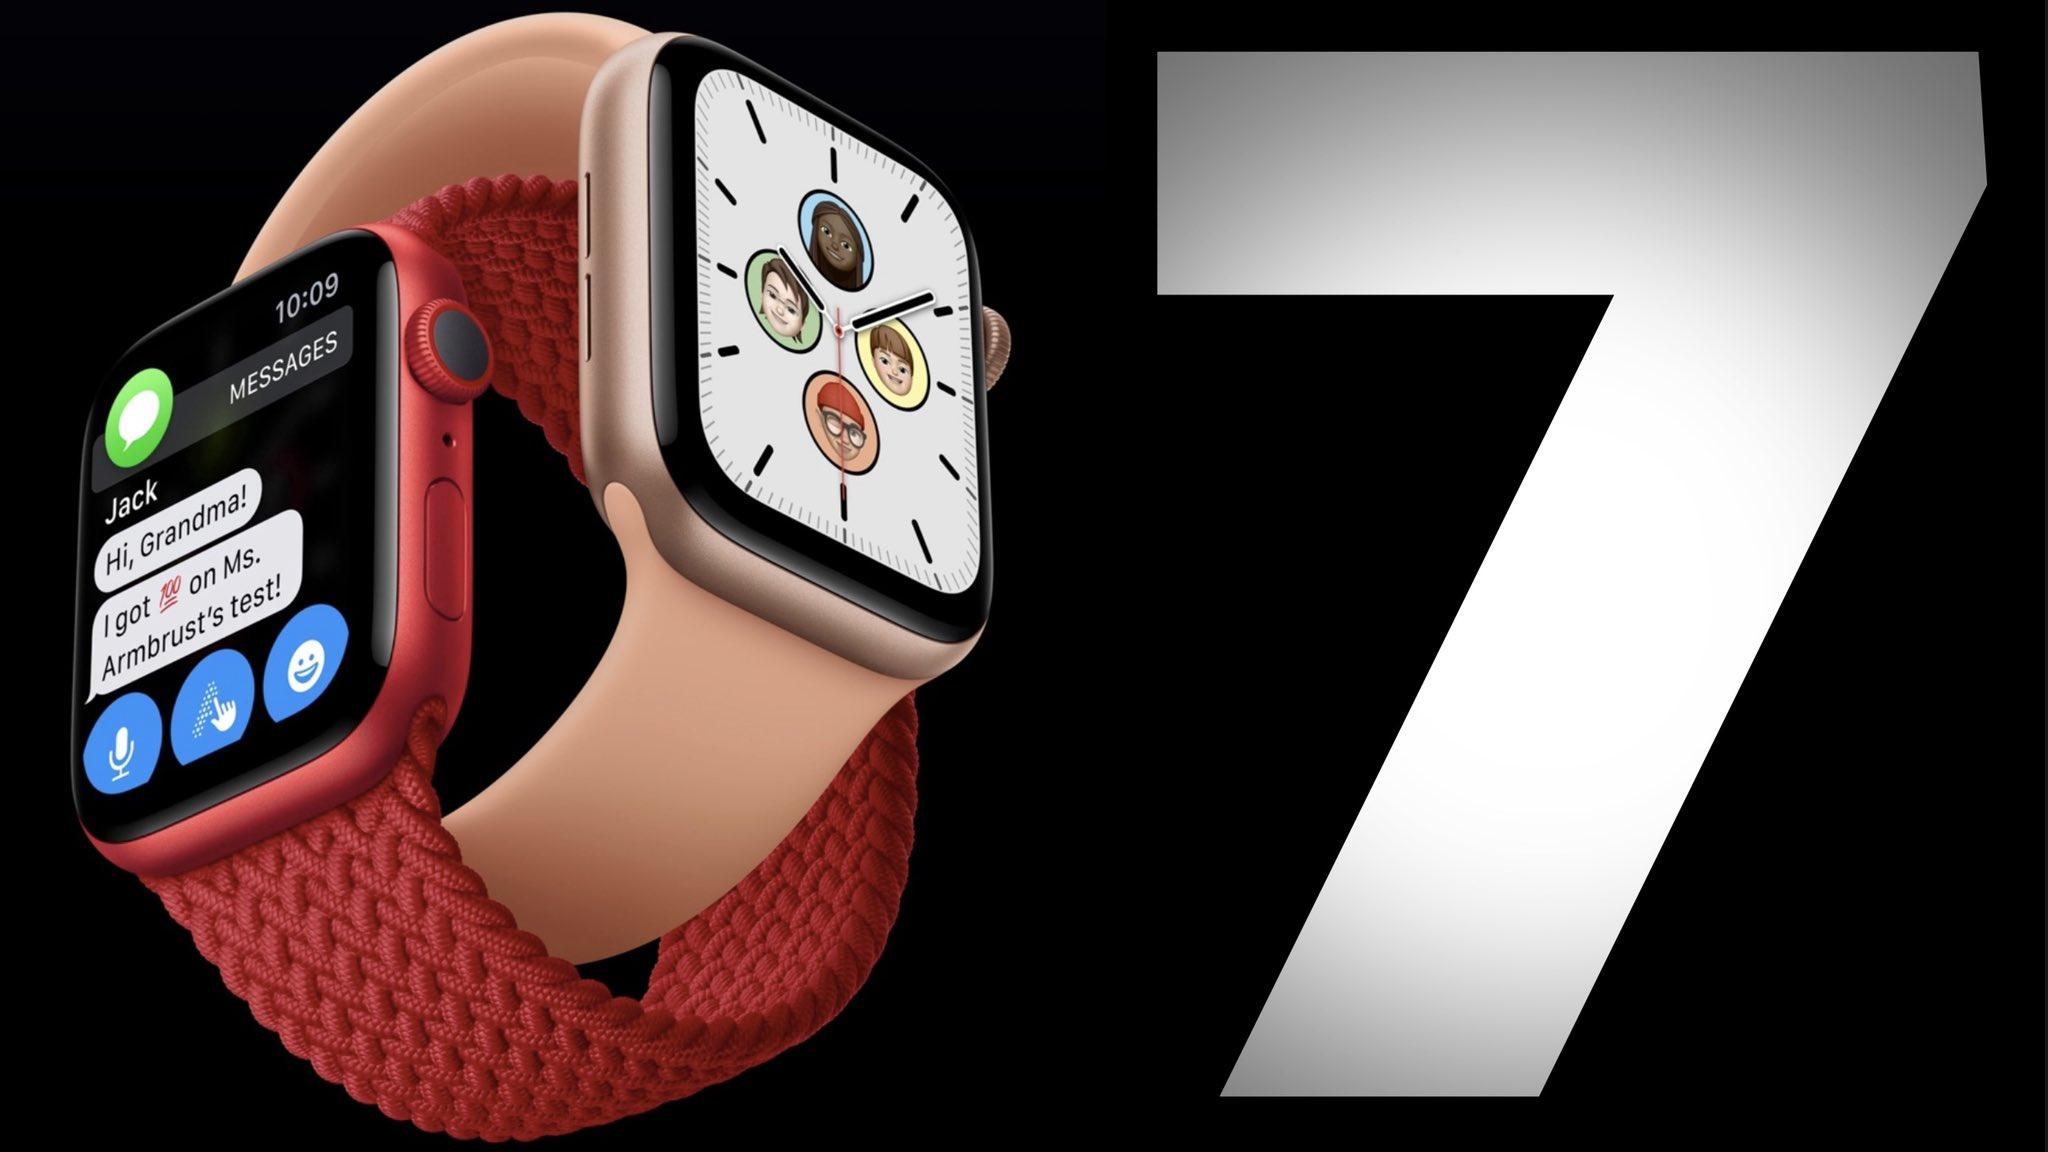 Apple watch series 7 speculated to feature dual-sided S7 chip